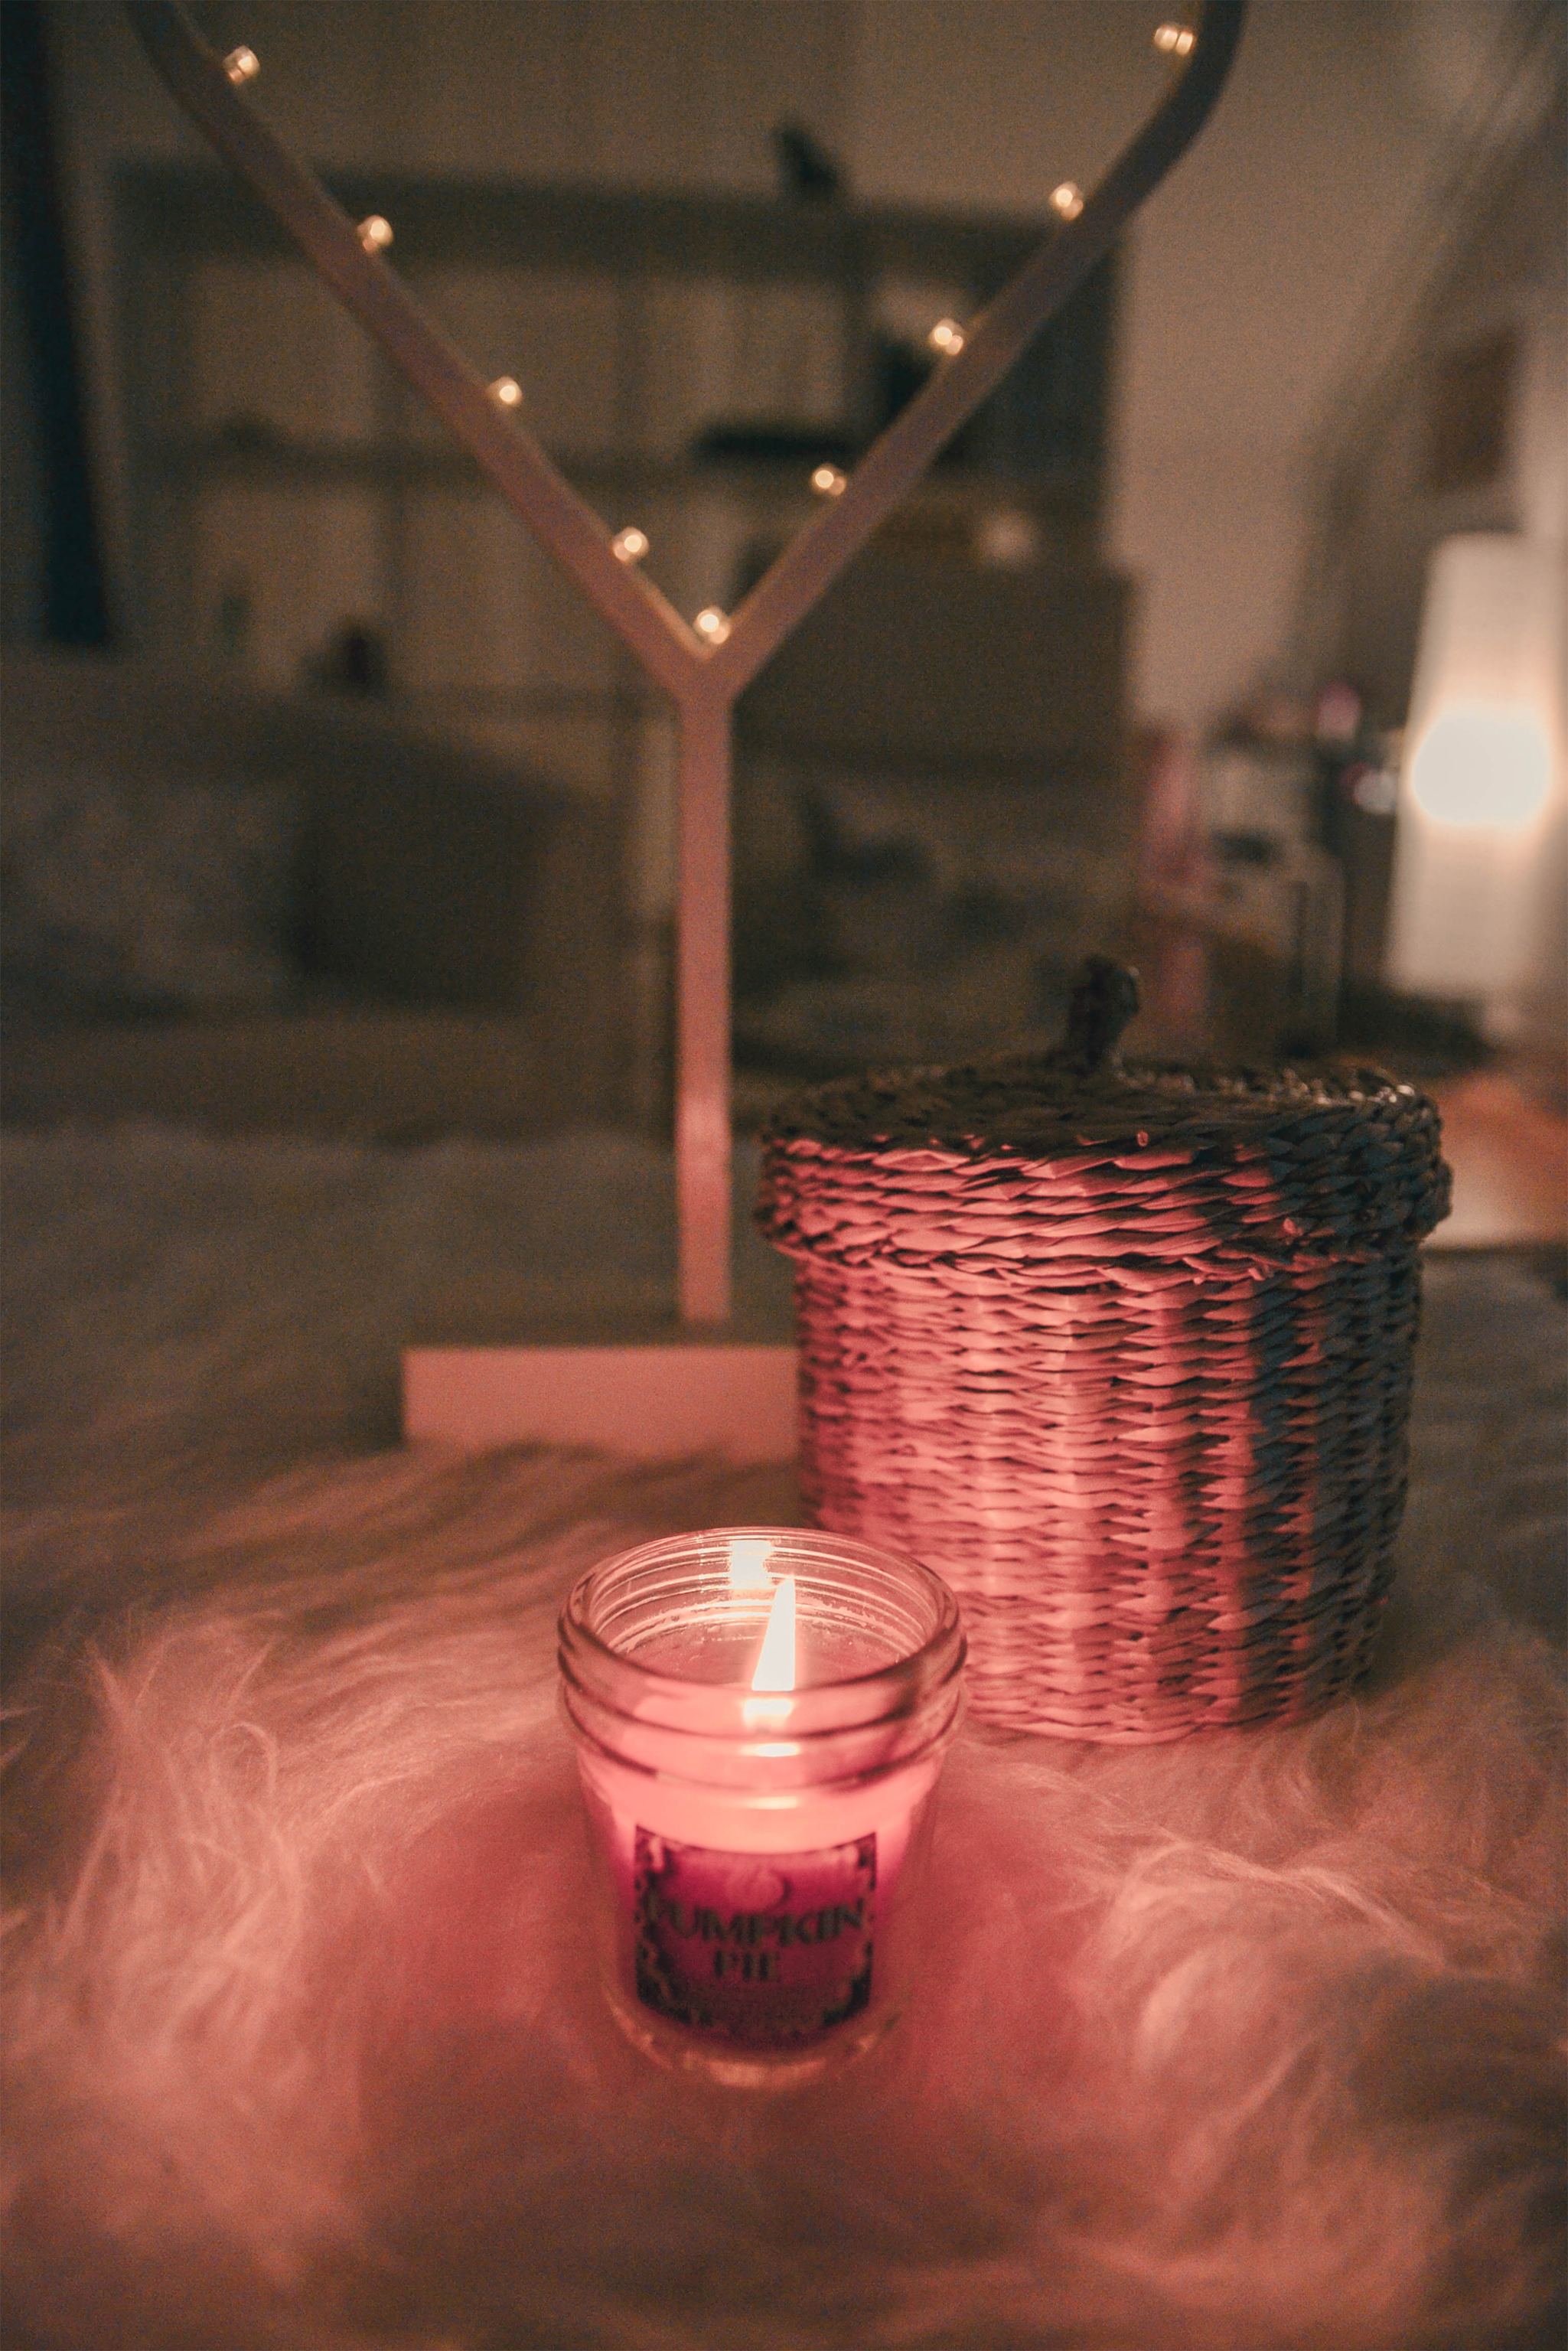 Hygge - Cozy Candle